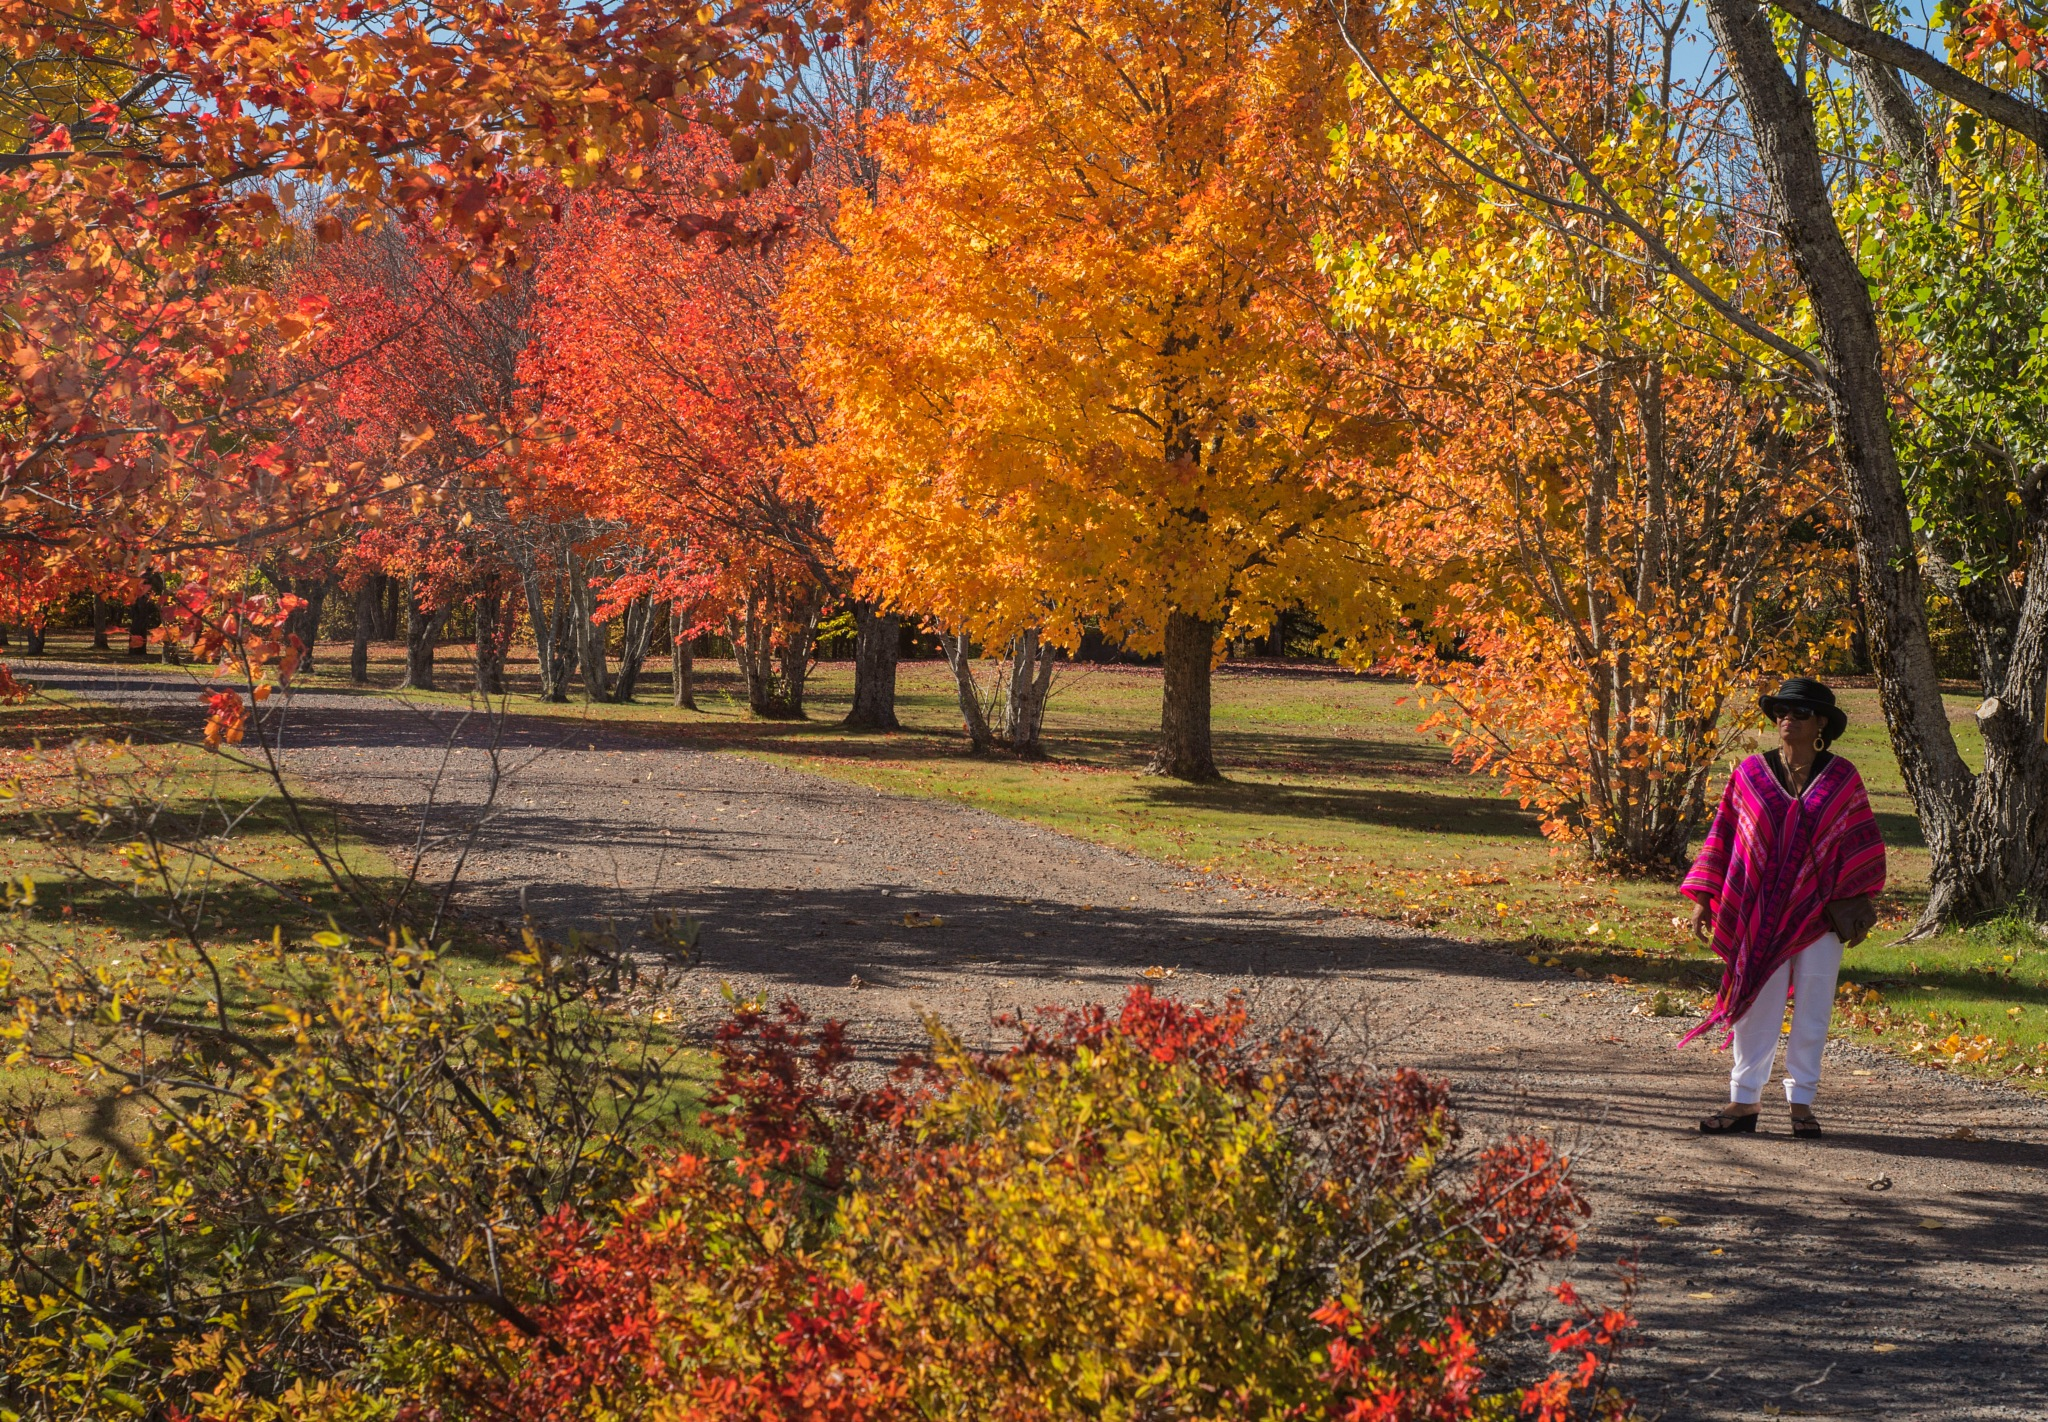 A Walk in the Park by Wayne L. Talbot